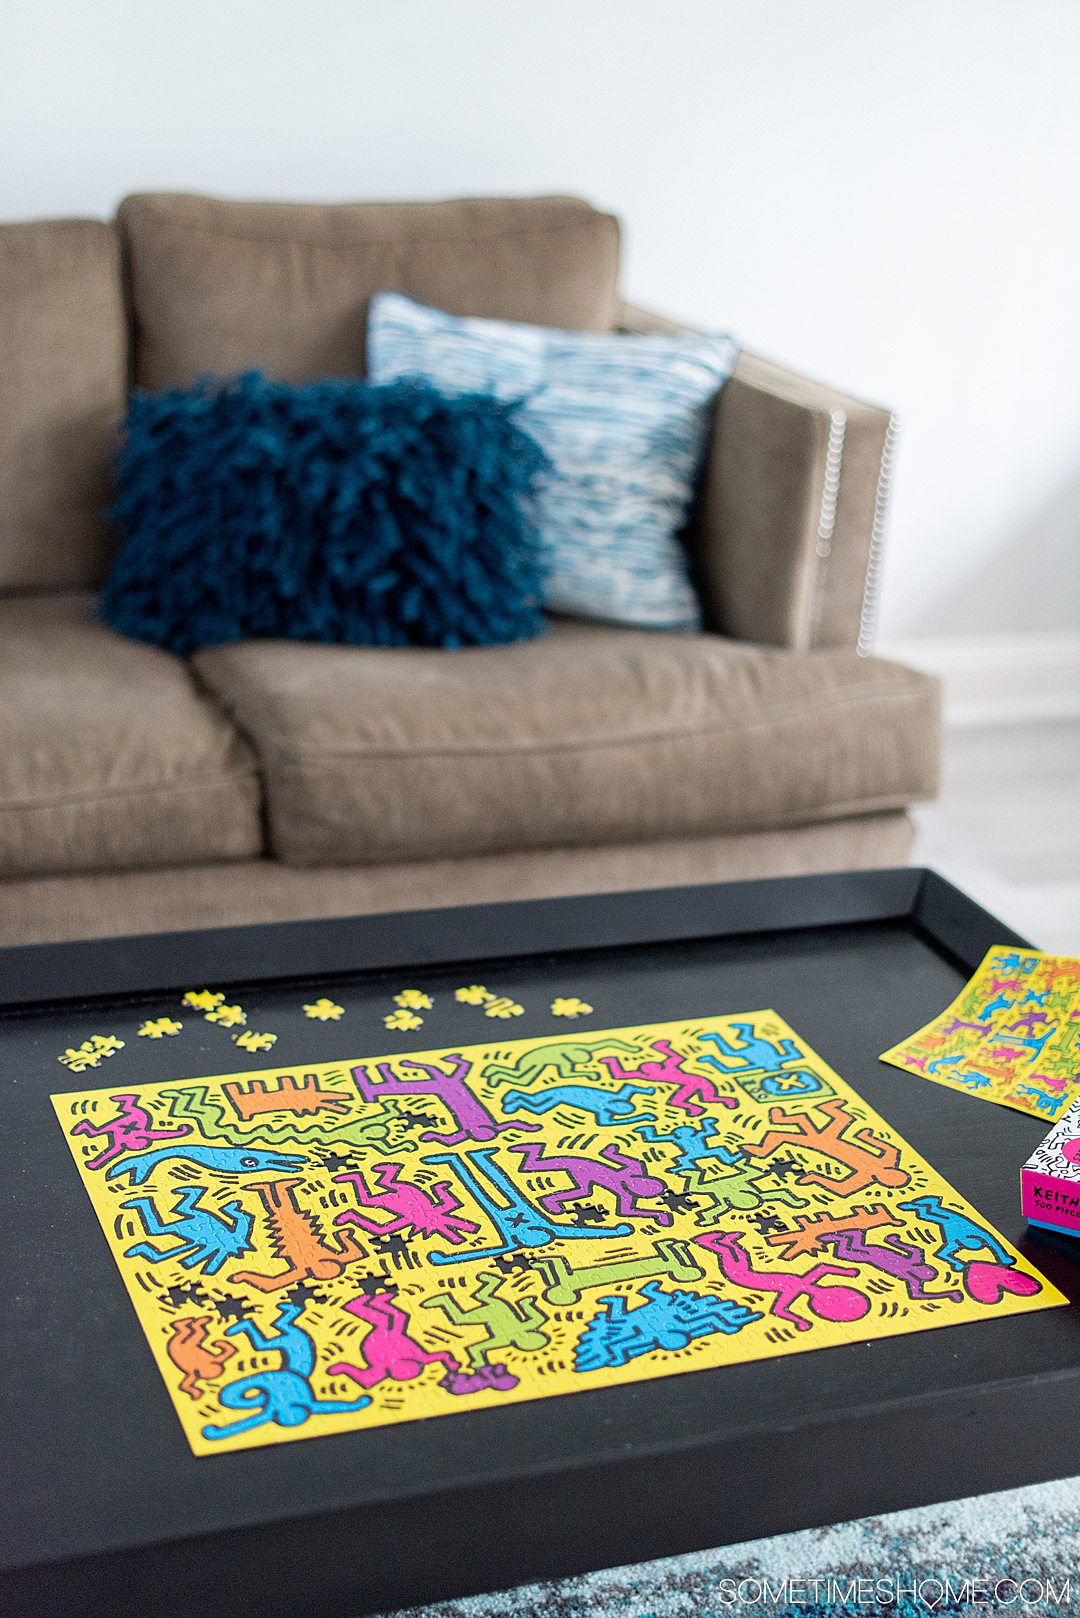 Everything PUZZLES including useful puzzle tips and tricks, from storage to unique types including 3D and difficult puzzles for advanced enthusiasts, and what to do with your jigsaw puzzle when it is finished. #puzzles #thingstodoathome #sometimeshome